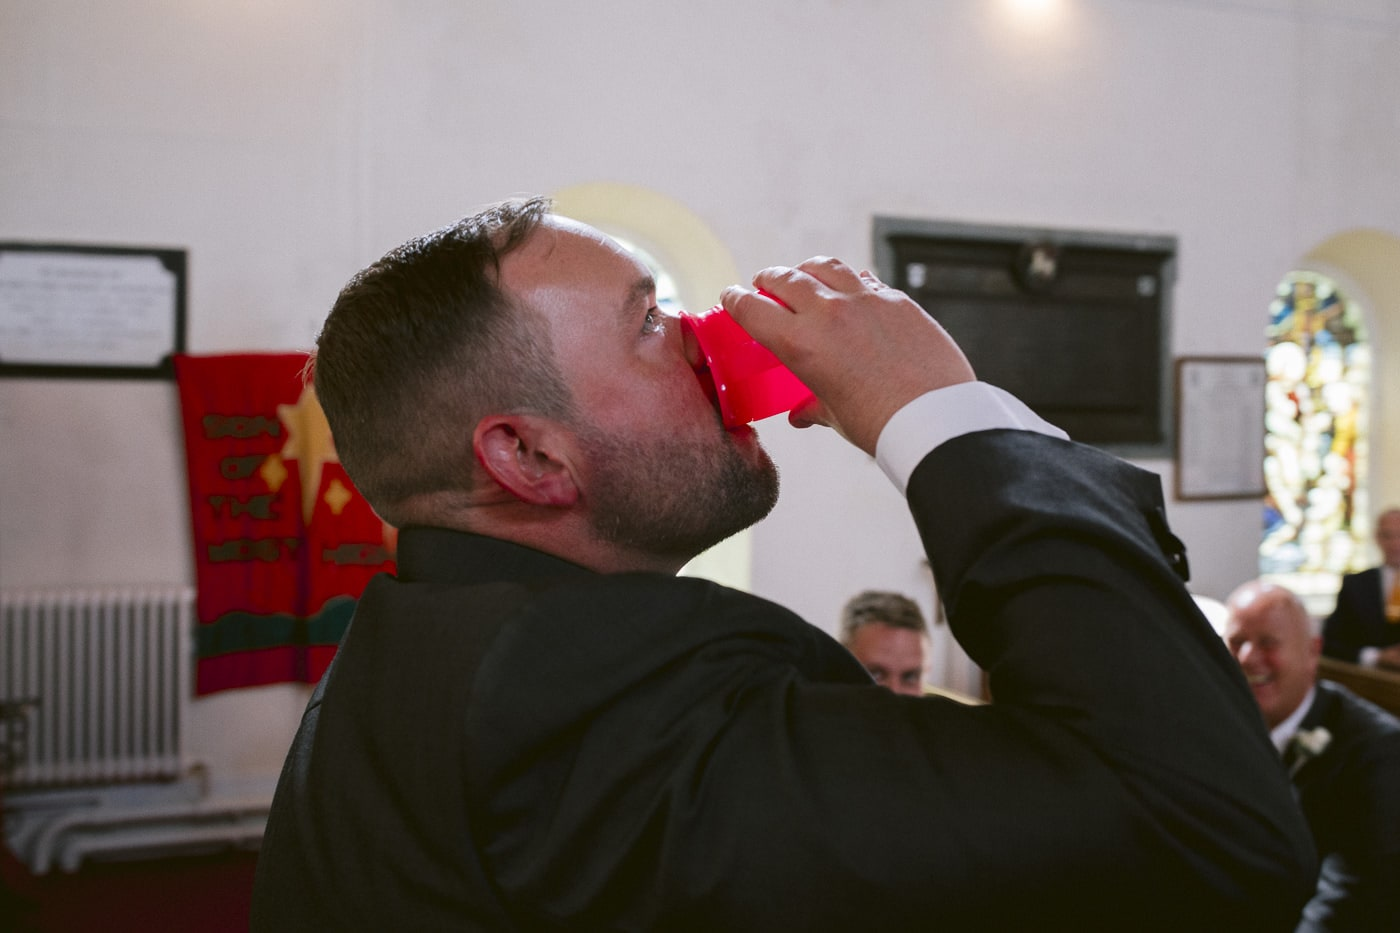 Photograph of Man Drinking From a Red Cup